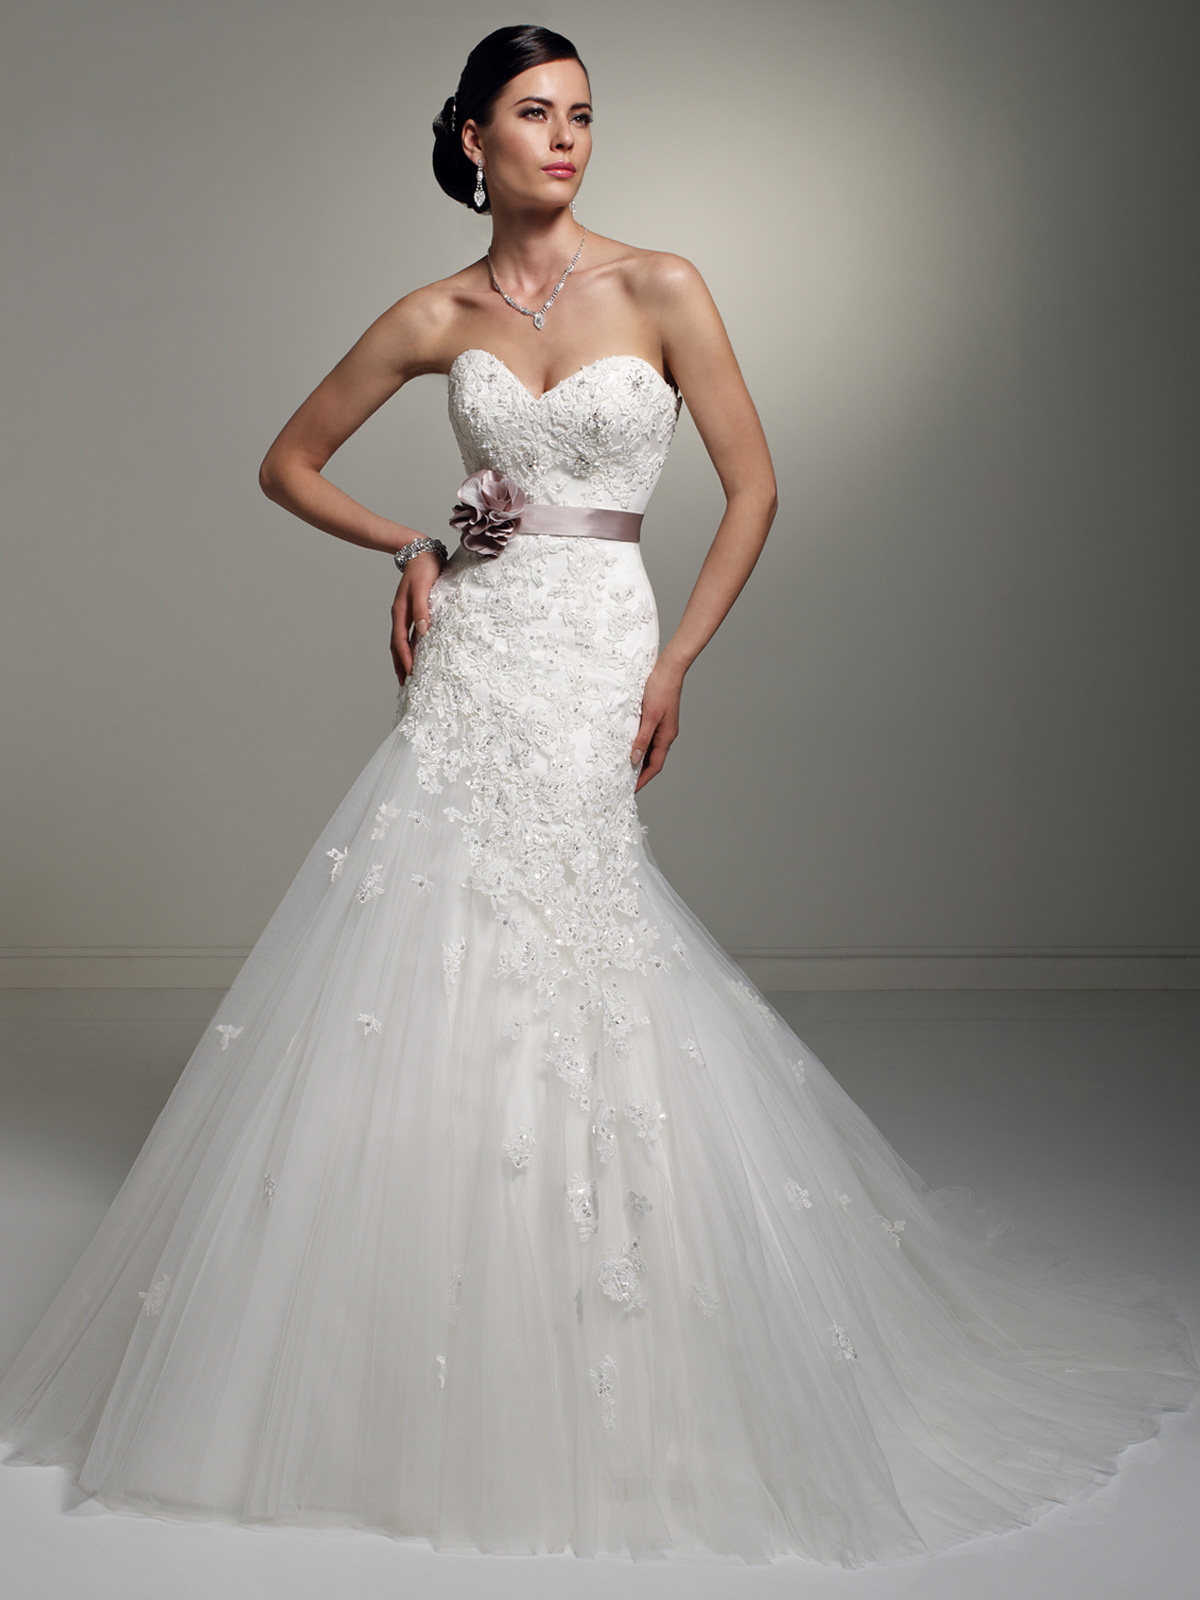 Sweetheart Tulle A Line Skirt Wedding Gown Jillian Sophia Tolli By Mon Cheri Y21246